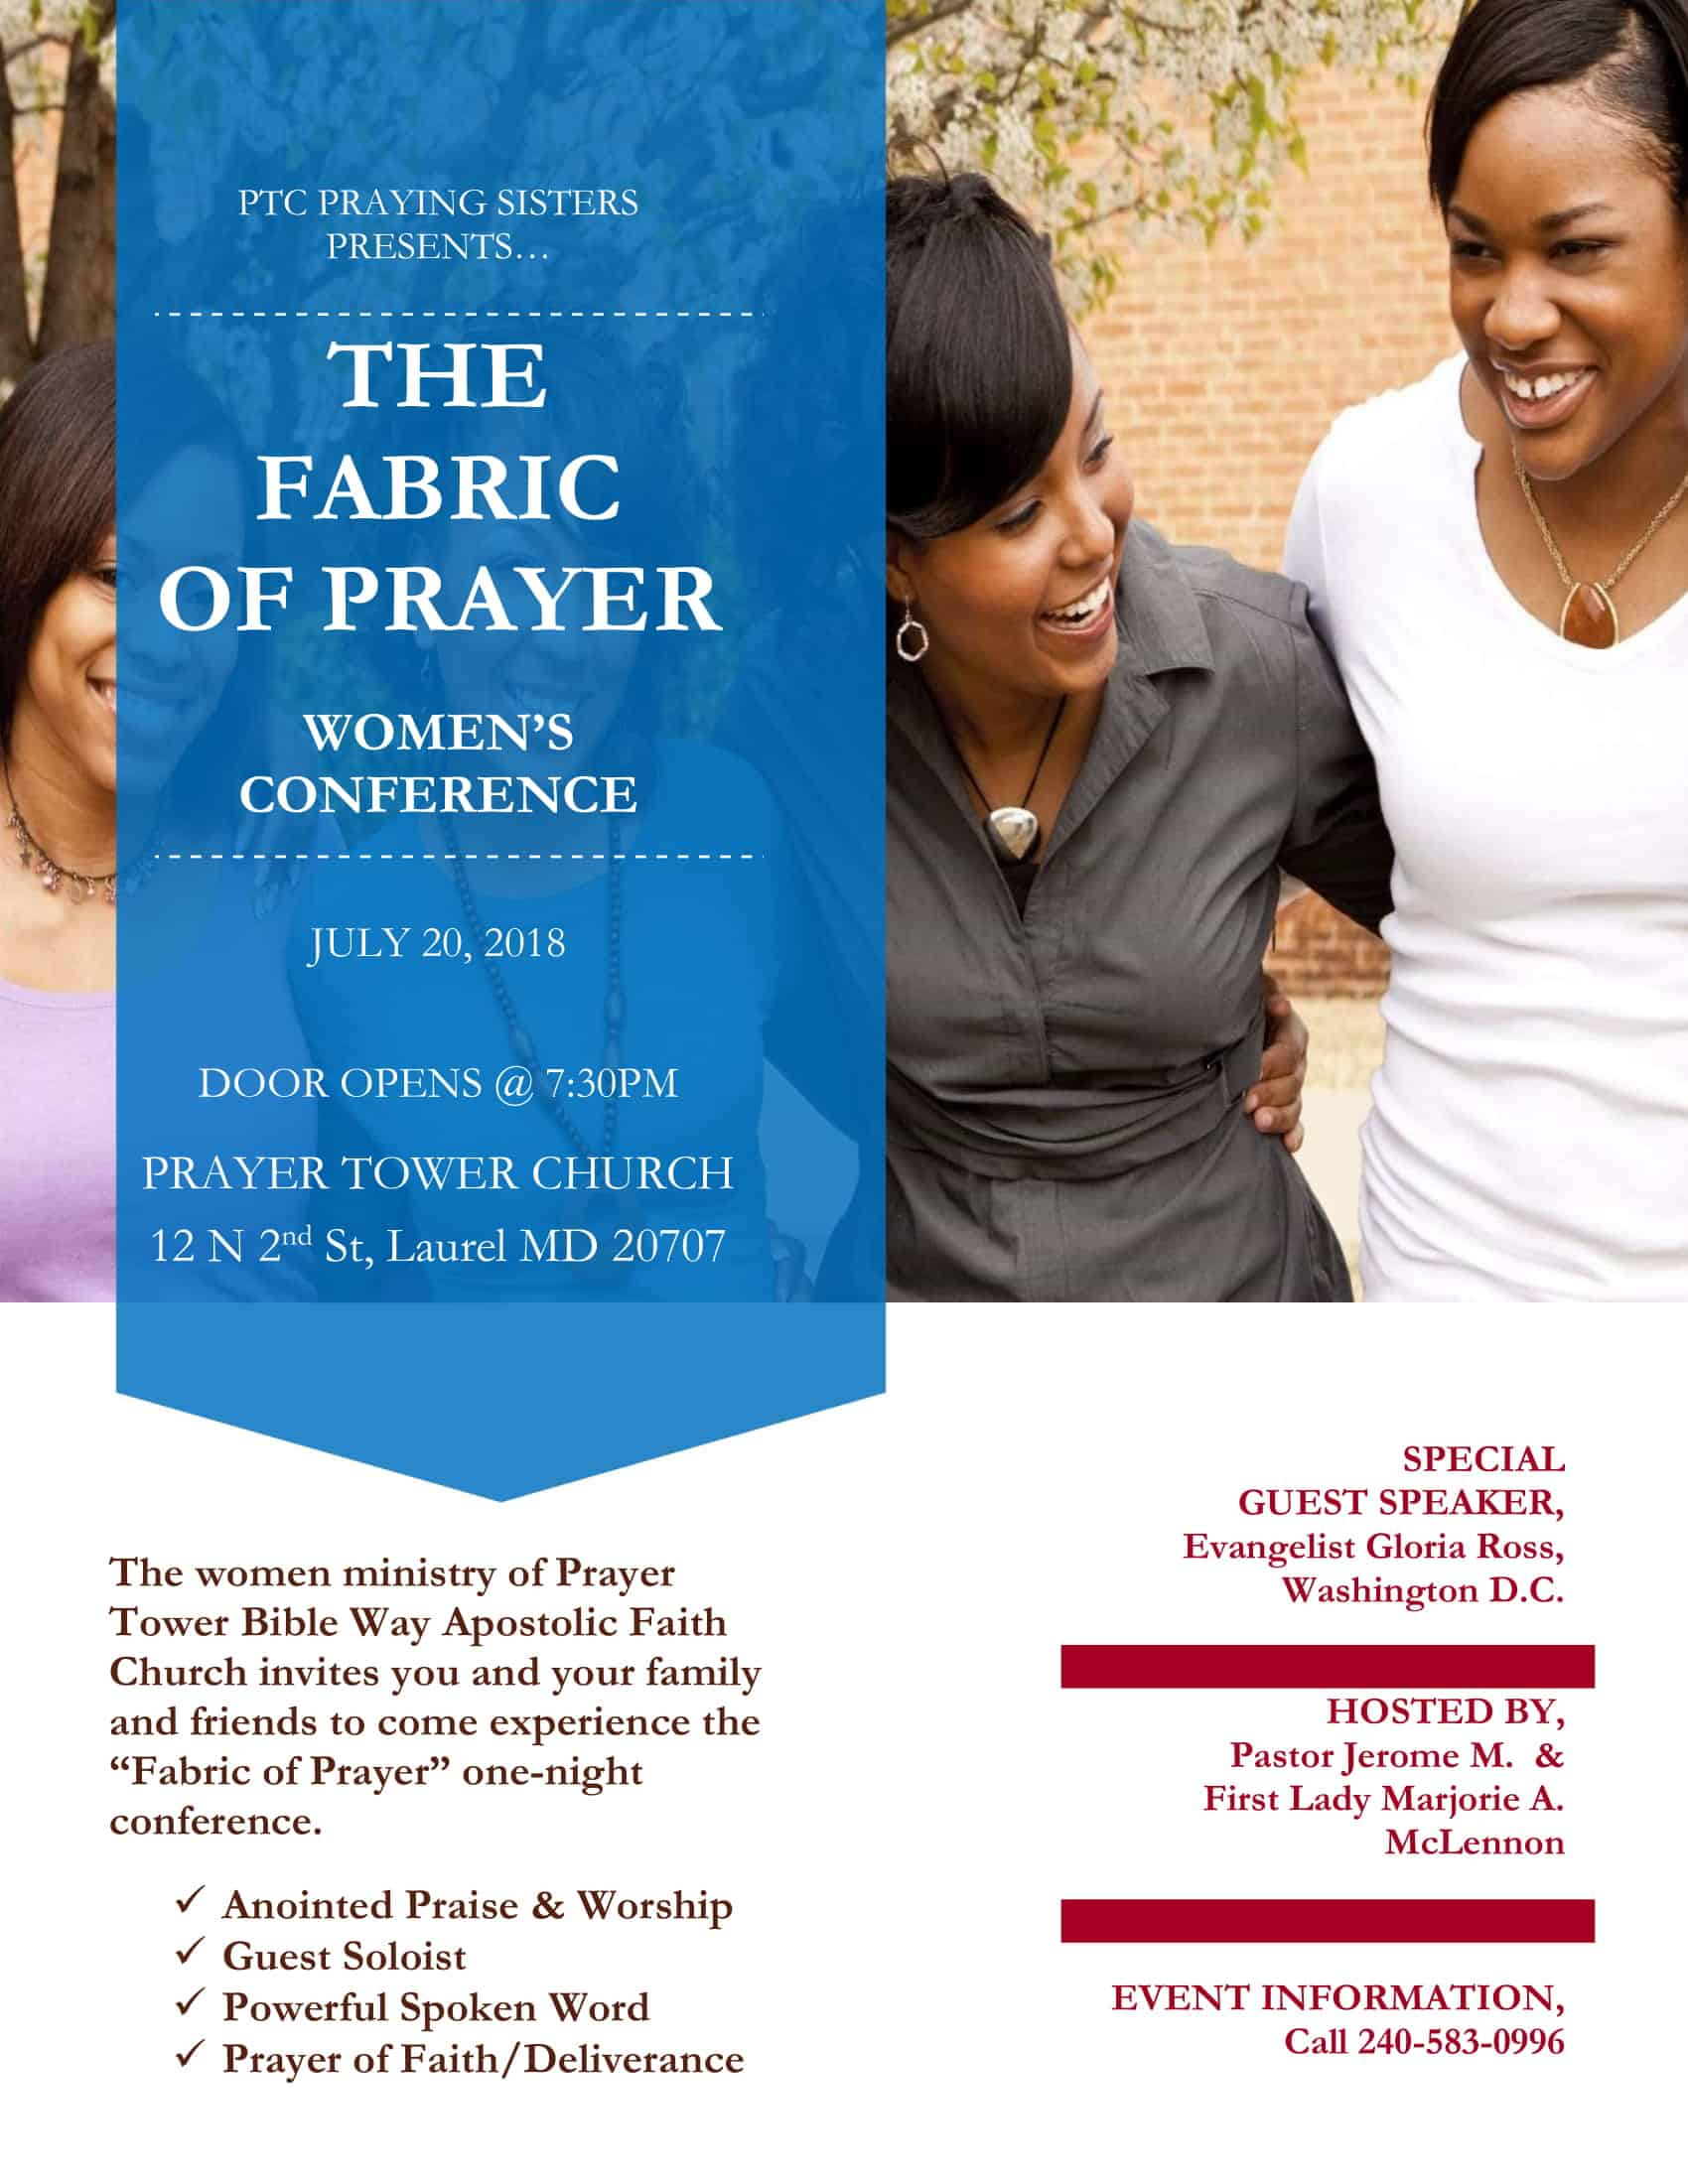 The women ministry of Prayer Tower Church invites you, your family & friends to come experience the Fabric of Prayer one night conference. Special Guest Speaker, Evangelist Gloria Ross.